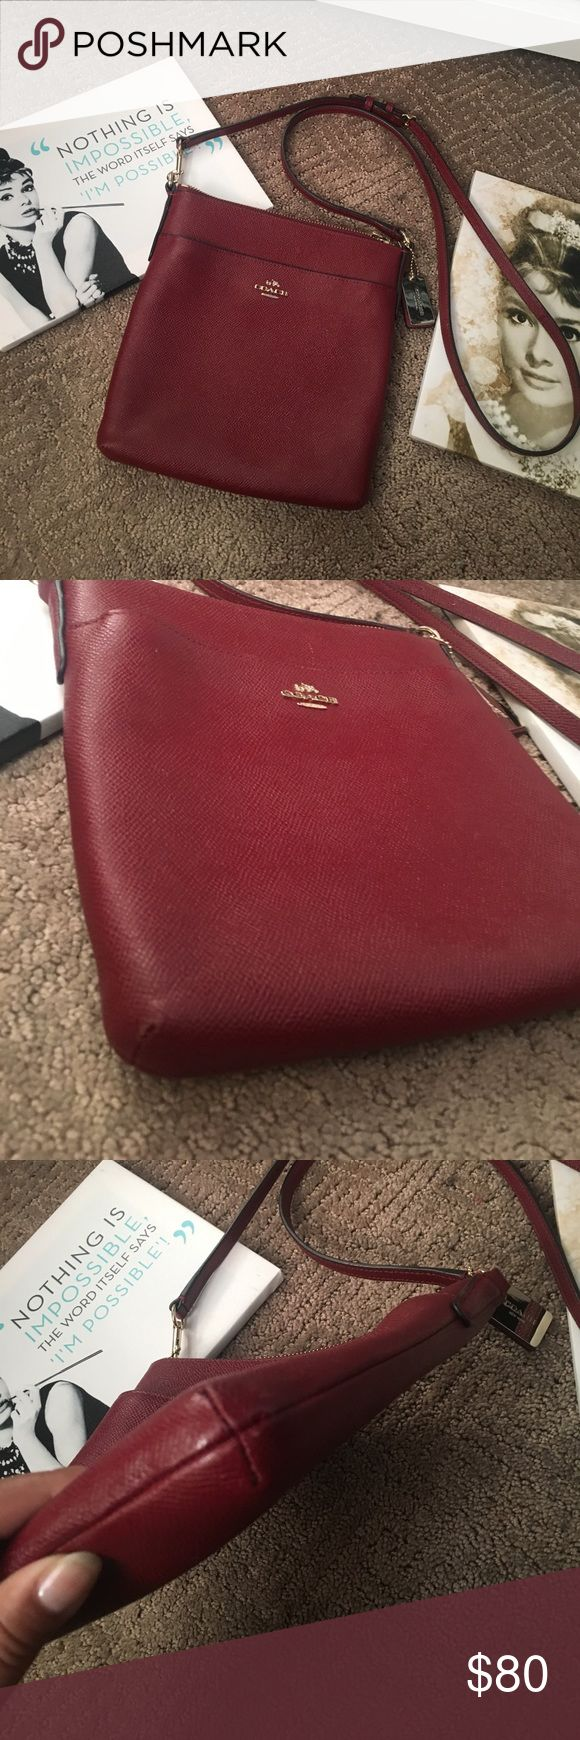 Coach swingpack 🌻 Great used condition. No stains inside at all. Few scratches on the front but only obvious up close. Pretty red color. More on the wine side. Gold hardware. Purchased at a full price coach store about 2 years ago. No dustbag included. Adjustable strap. Coach Bags Crossbody Bags